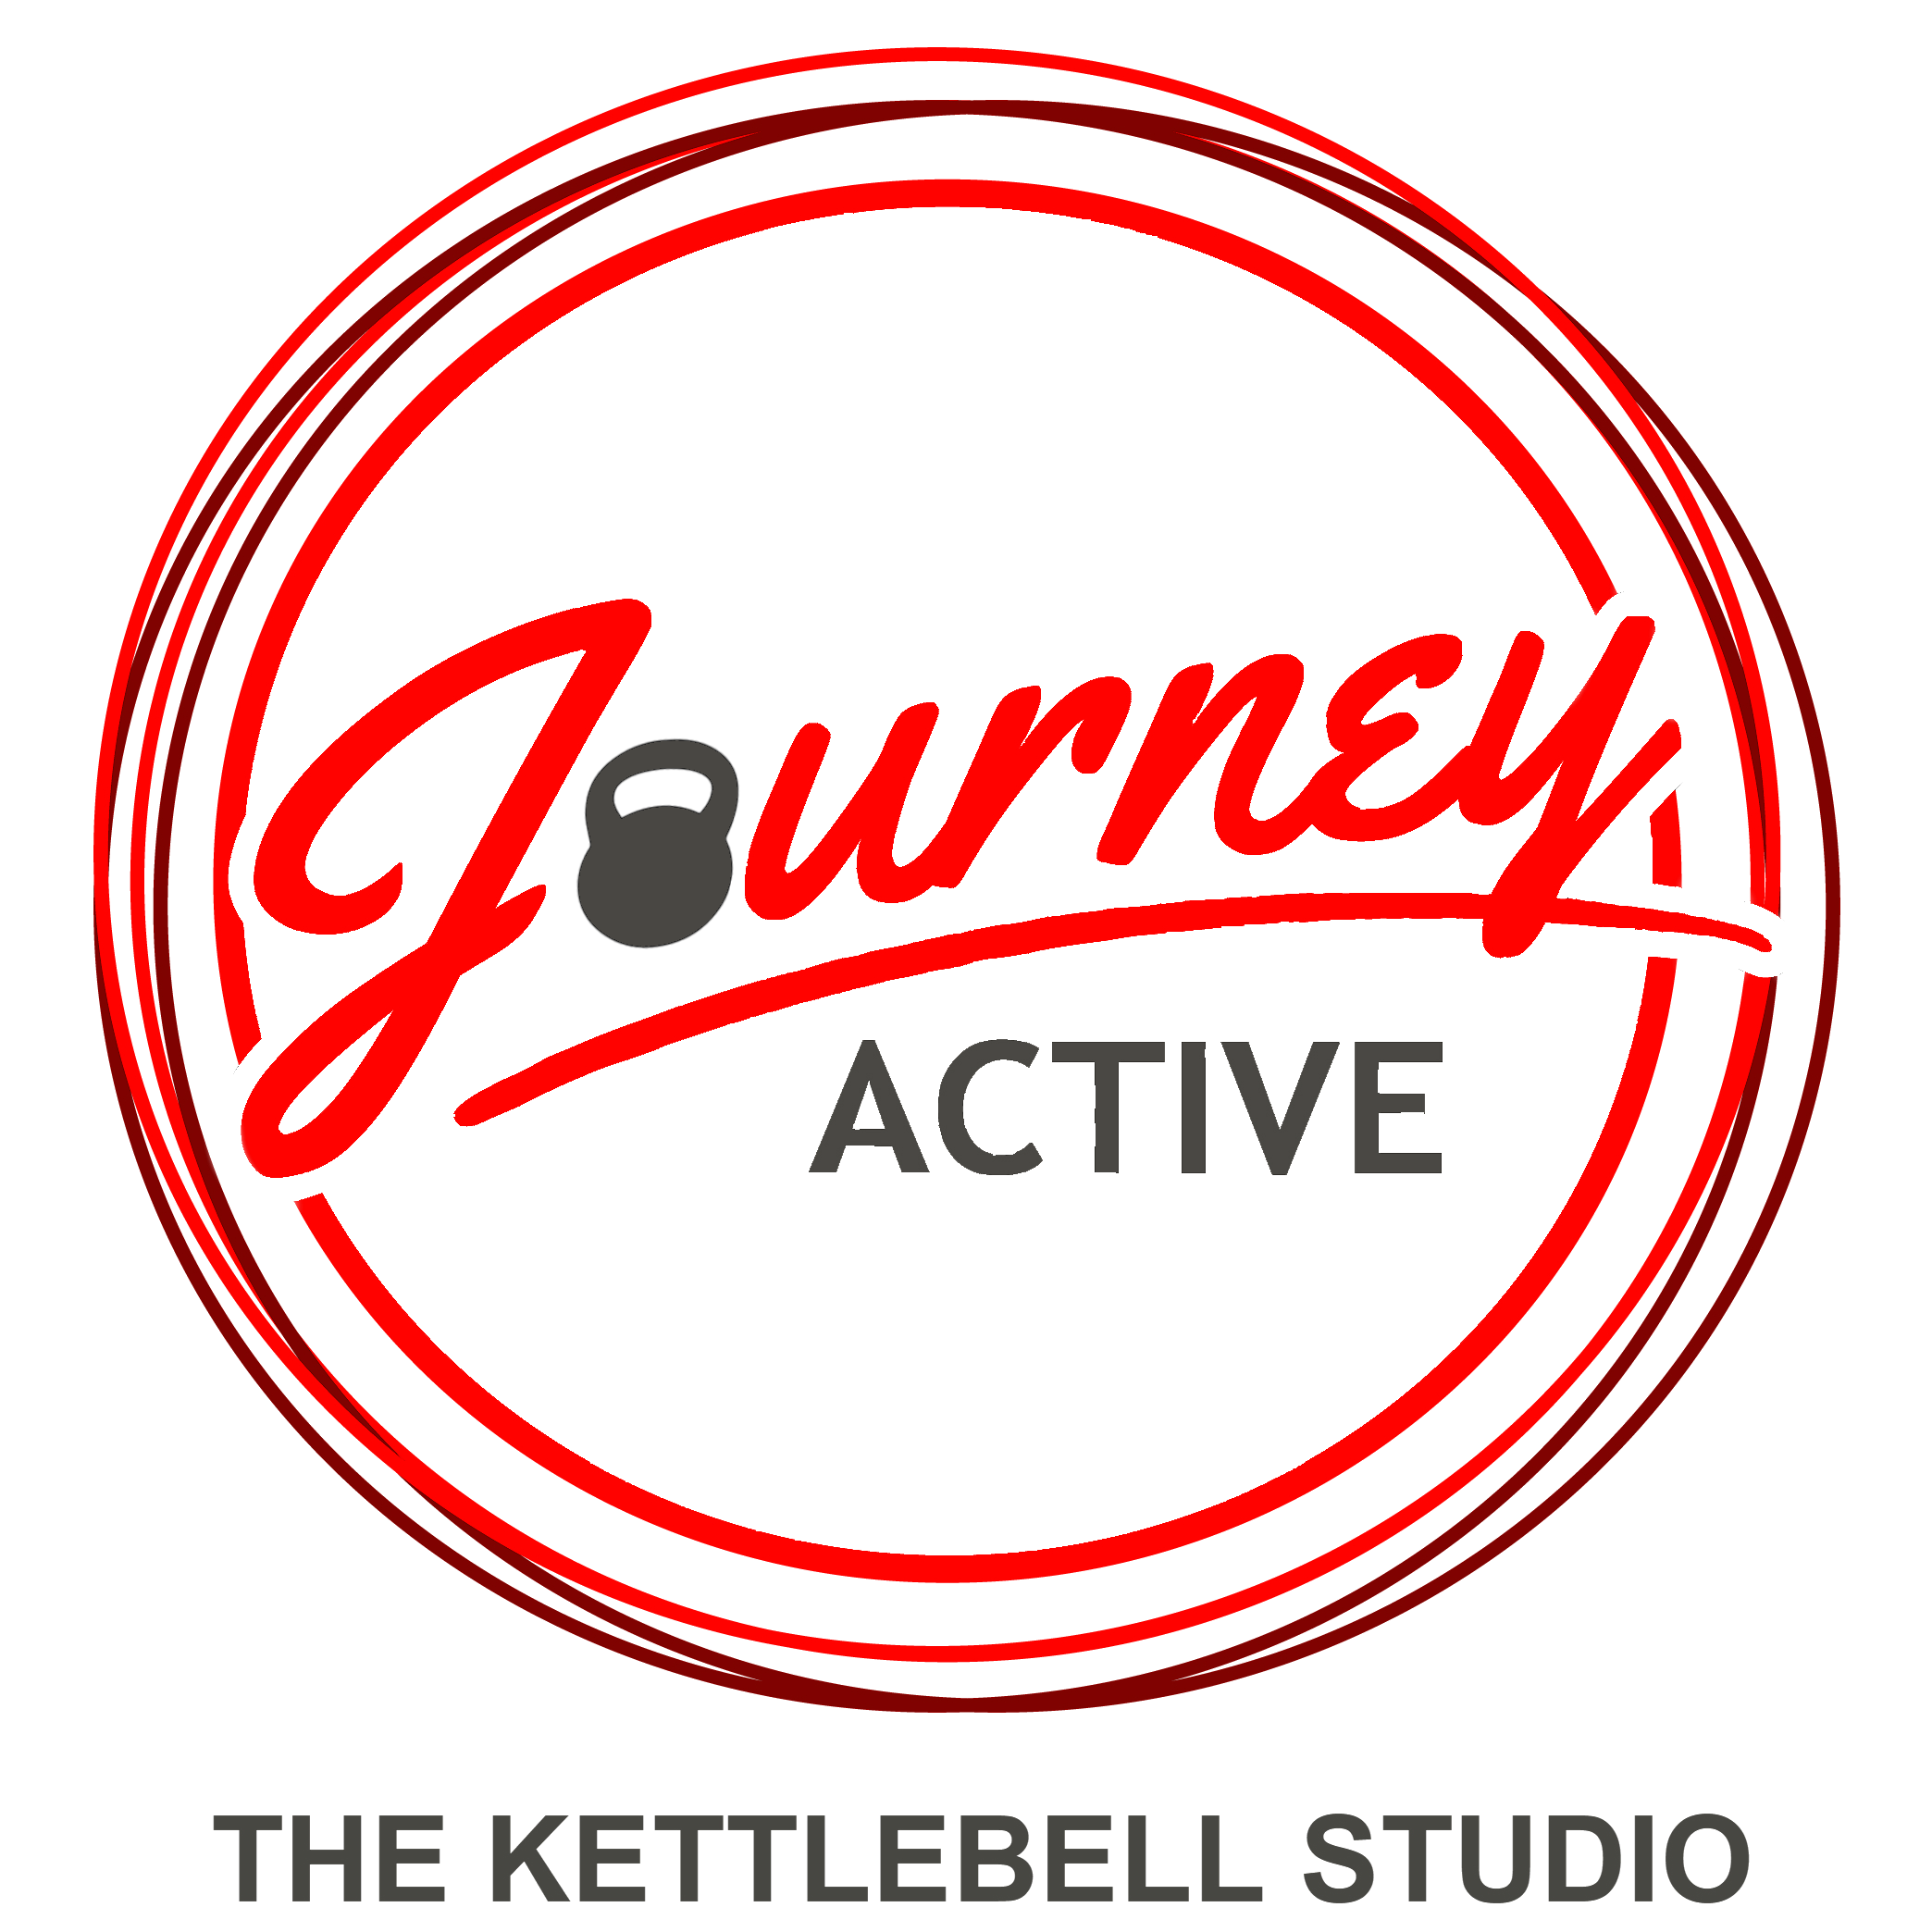 Journey Active logo